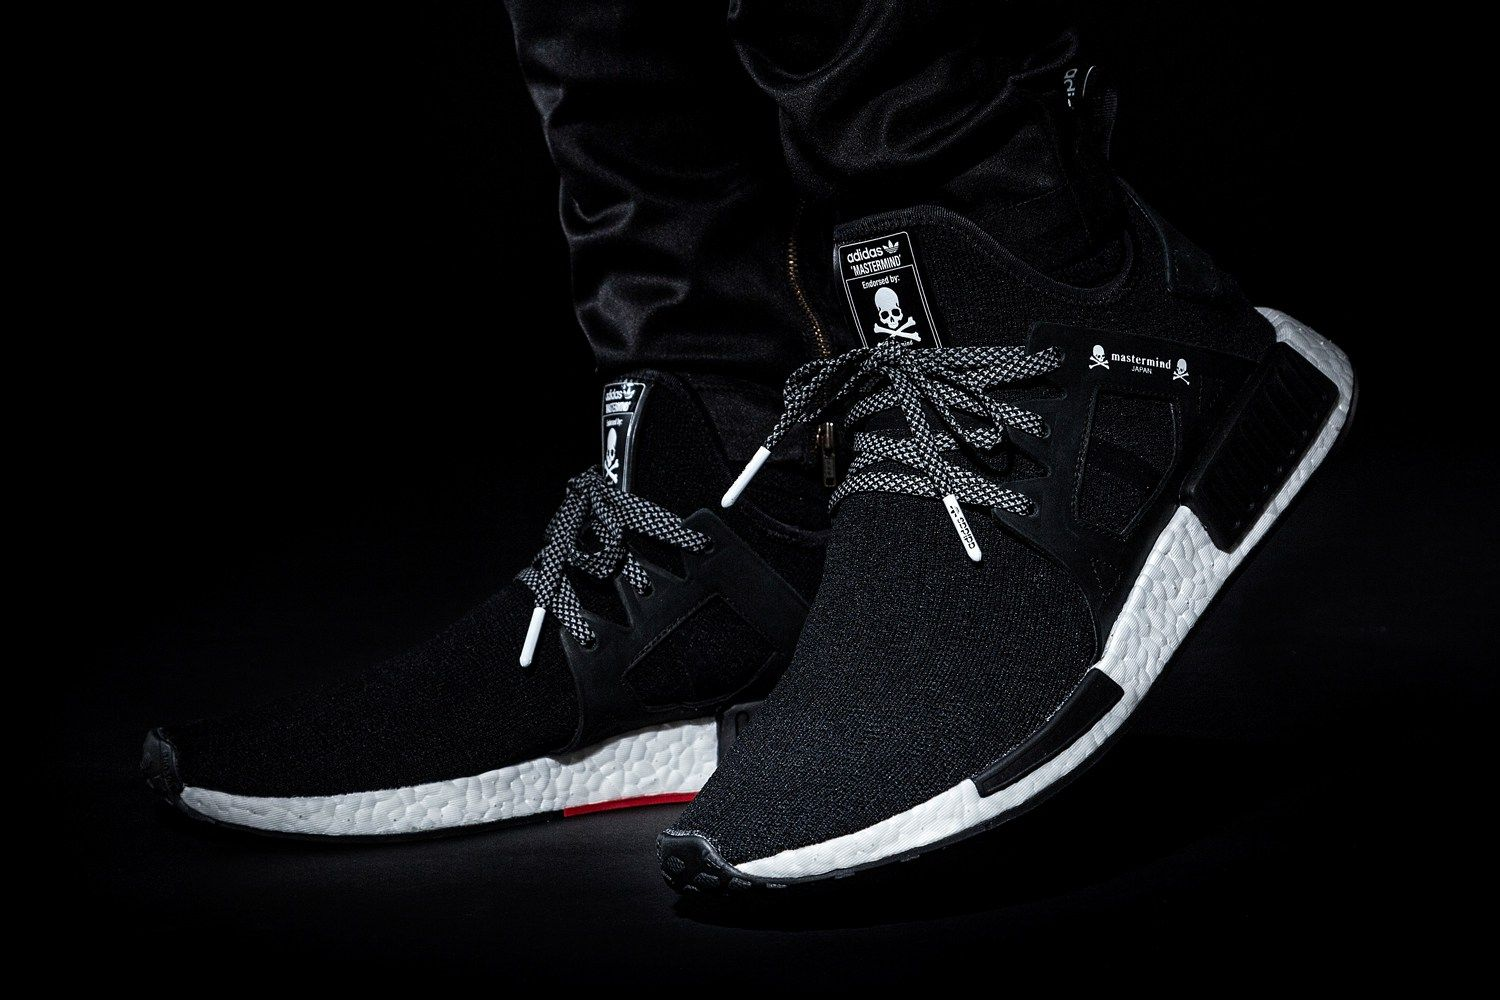 adidas Originals NMD XR1 PK White Concrete